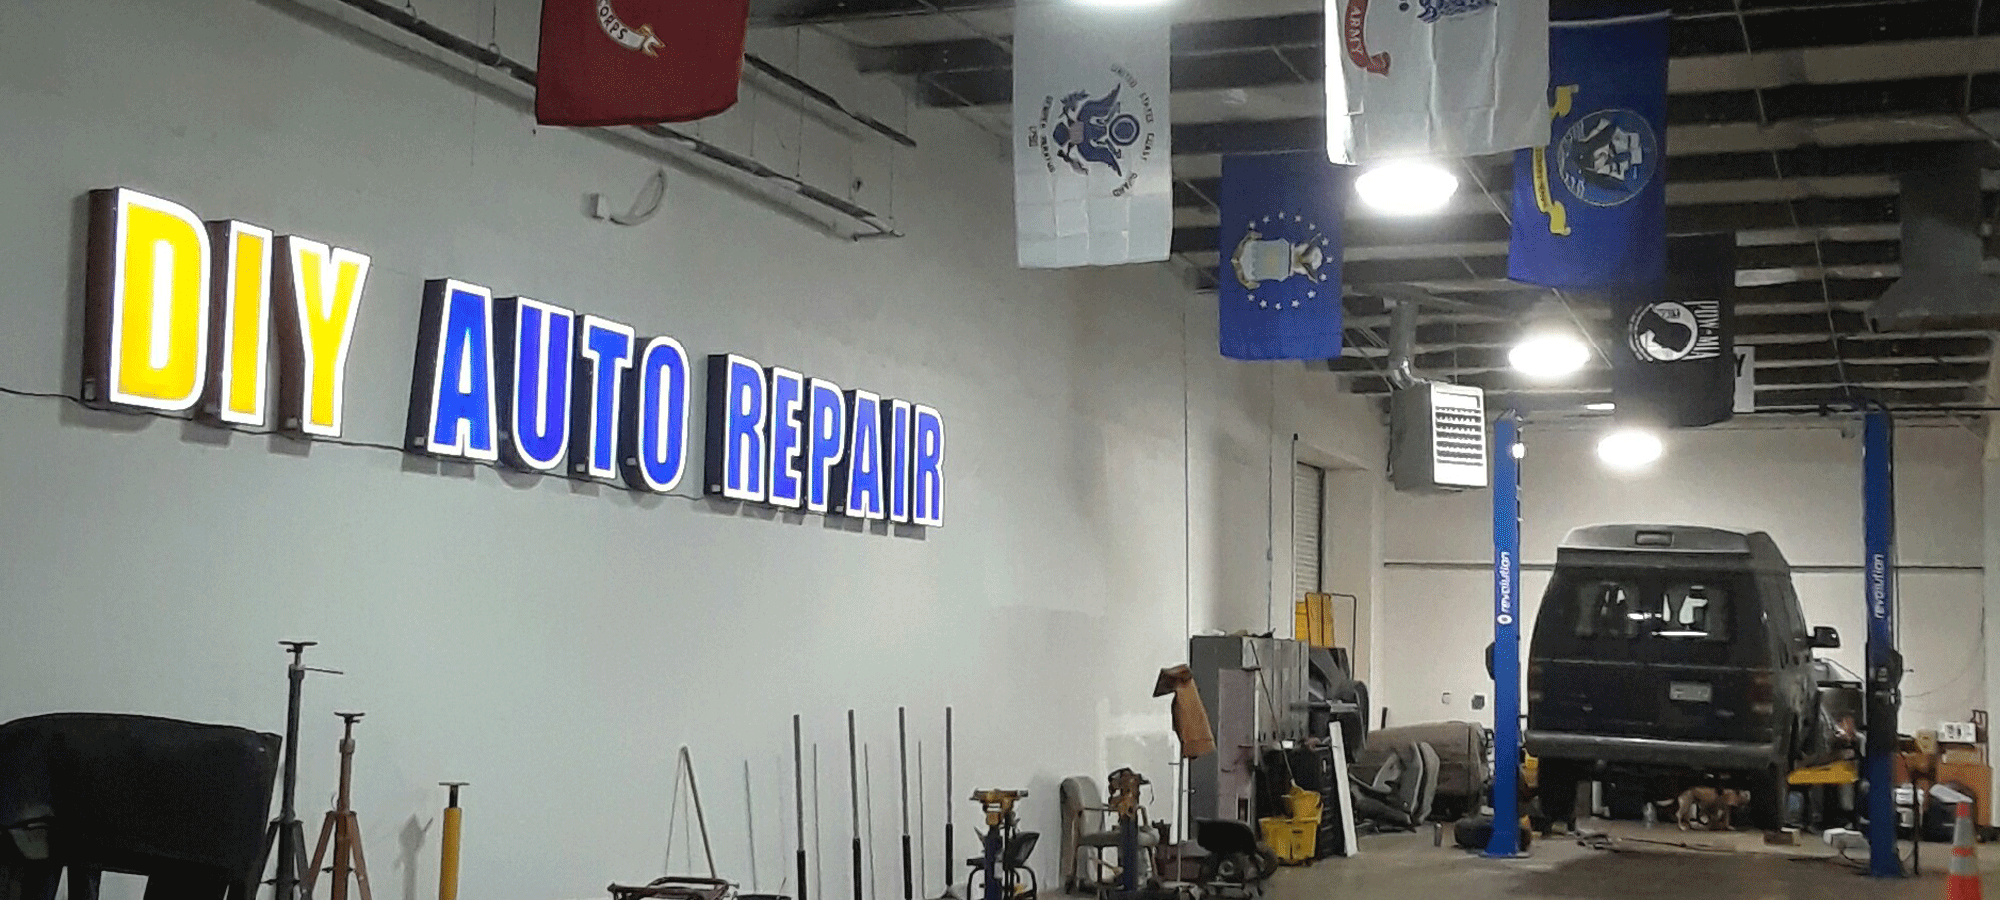 Diy auto repair shops equipped self service garage bays ase master certified technicians we can assist you with your car repair solutioingenieria